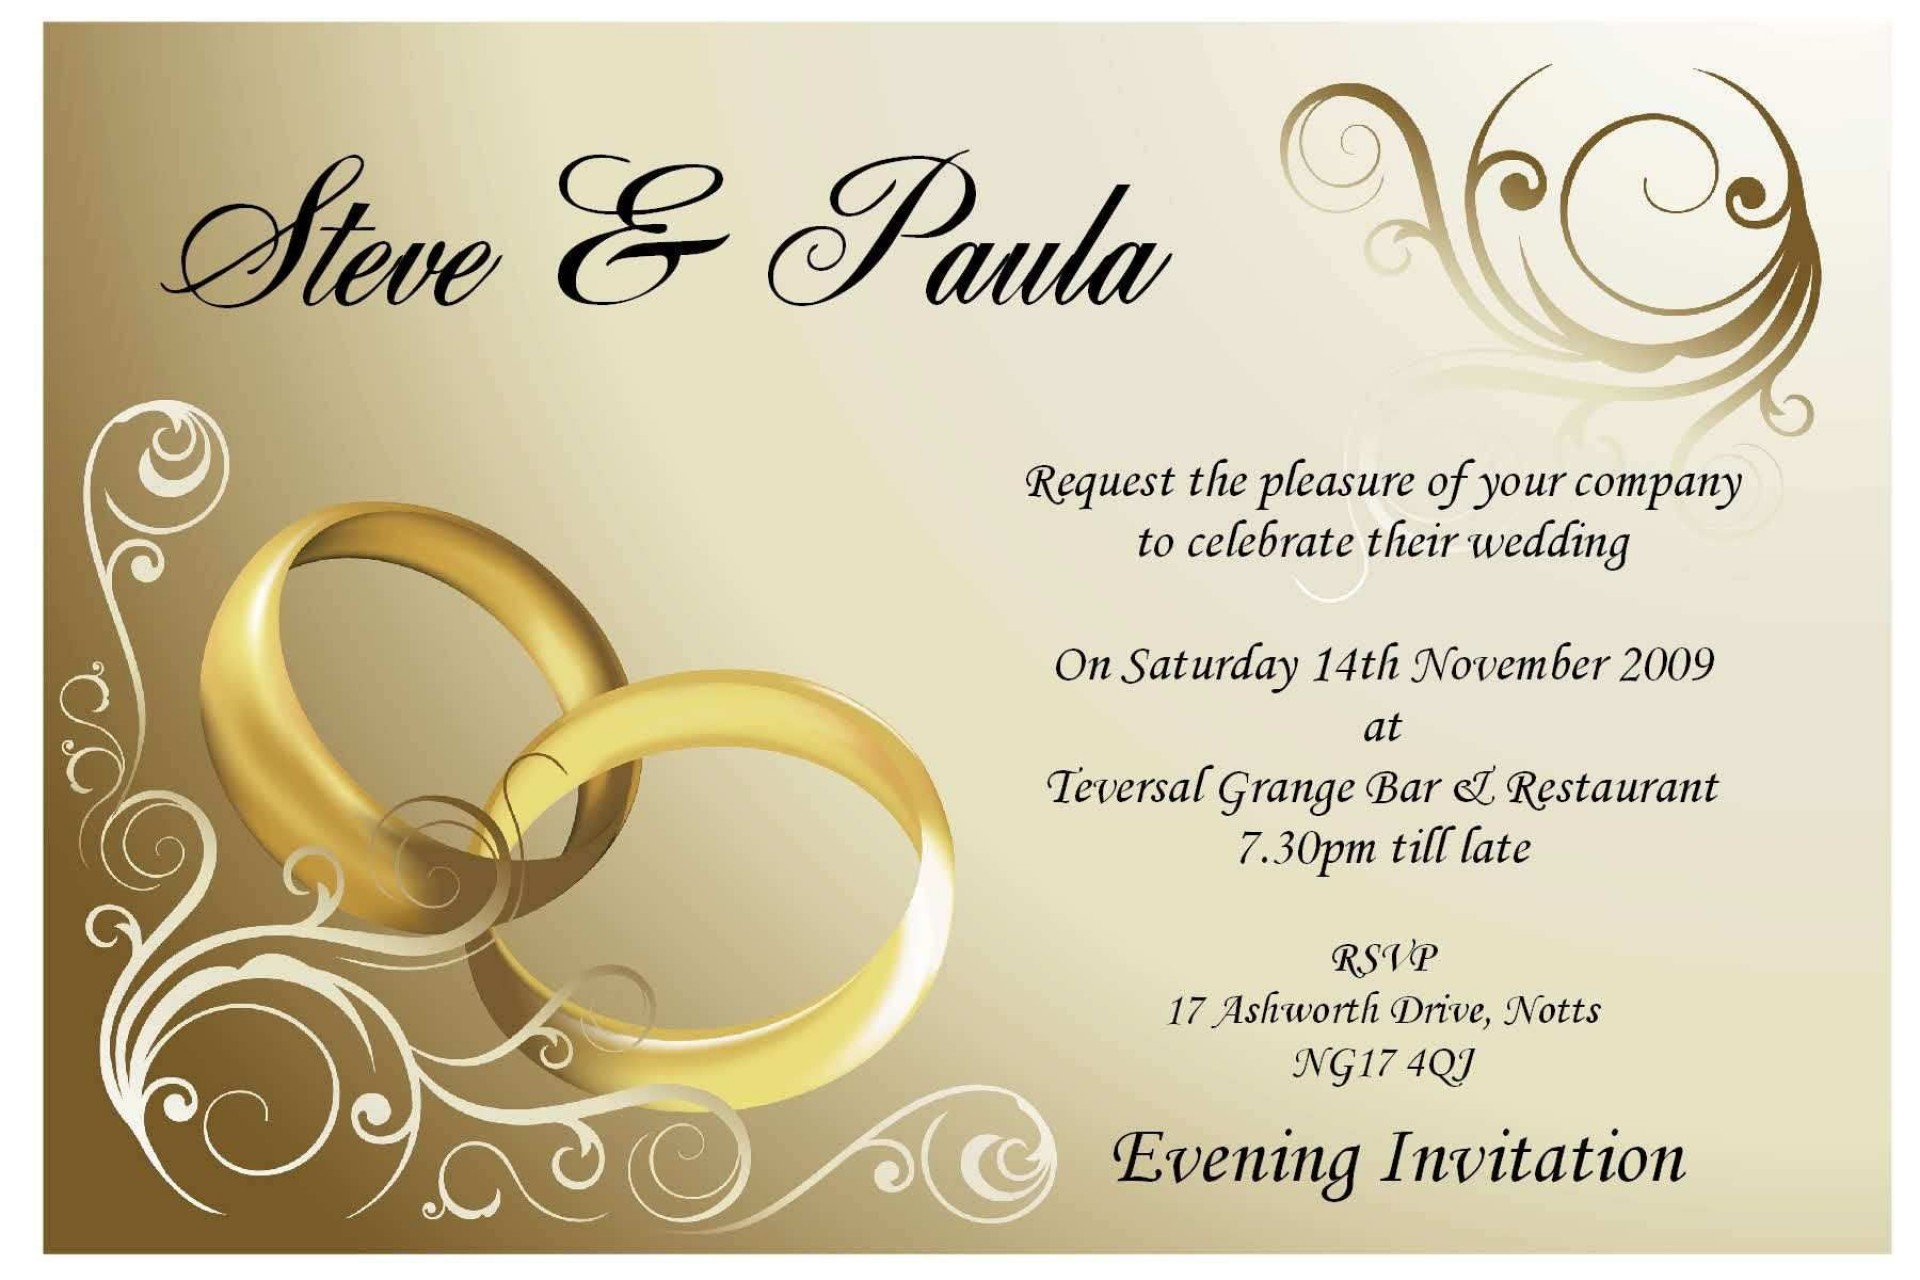 003 Fantastic Free Online Indian Wedding Invitation Card Template Highest Clarity  Templates1920